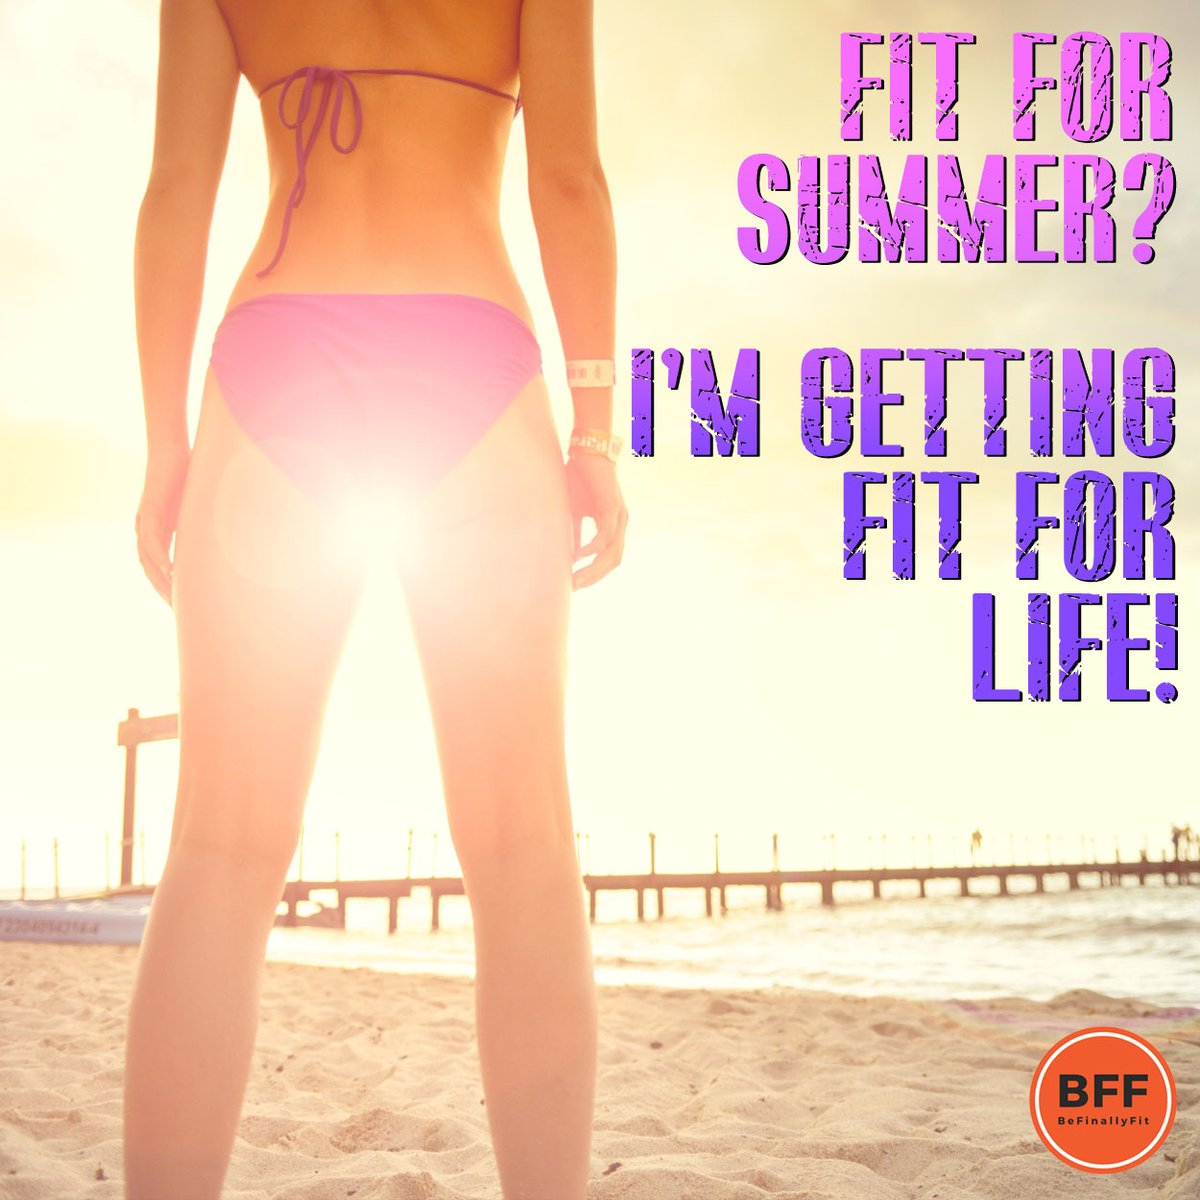 You want to get fit for summer? Get your goals on getting fit for life!...#befinallyfit #bff #tuesdaymorning #tuesdaytips #tuesdayvibes #fitnesstip #fitquote #weightloss #weightlossjourney #loseweight #fitness #fitnessmotivation #weightlossforwomen ##diet #fitnessisawayoflife